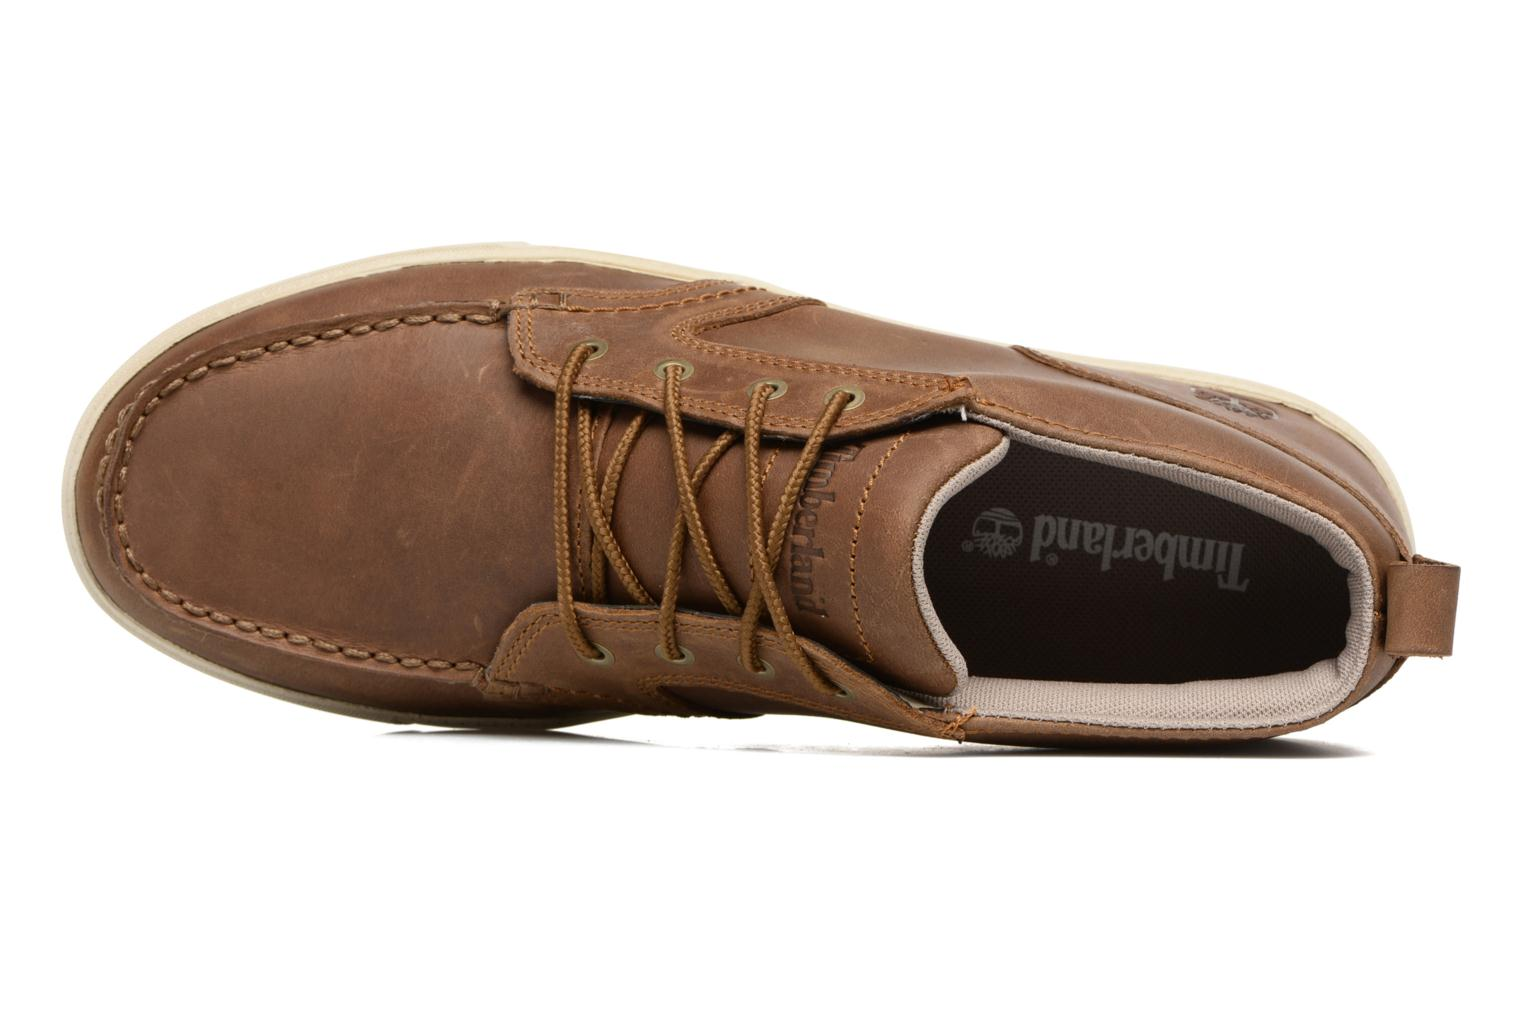 Fulk LP Chukka MT Le Dusty